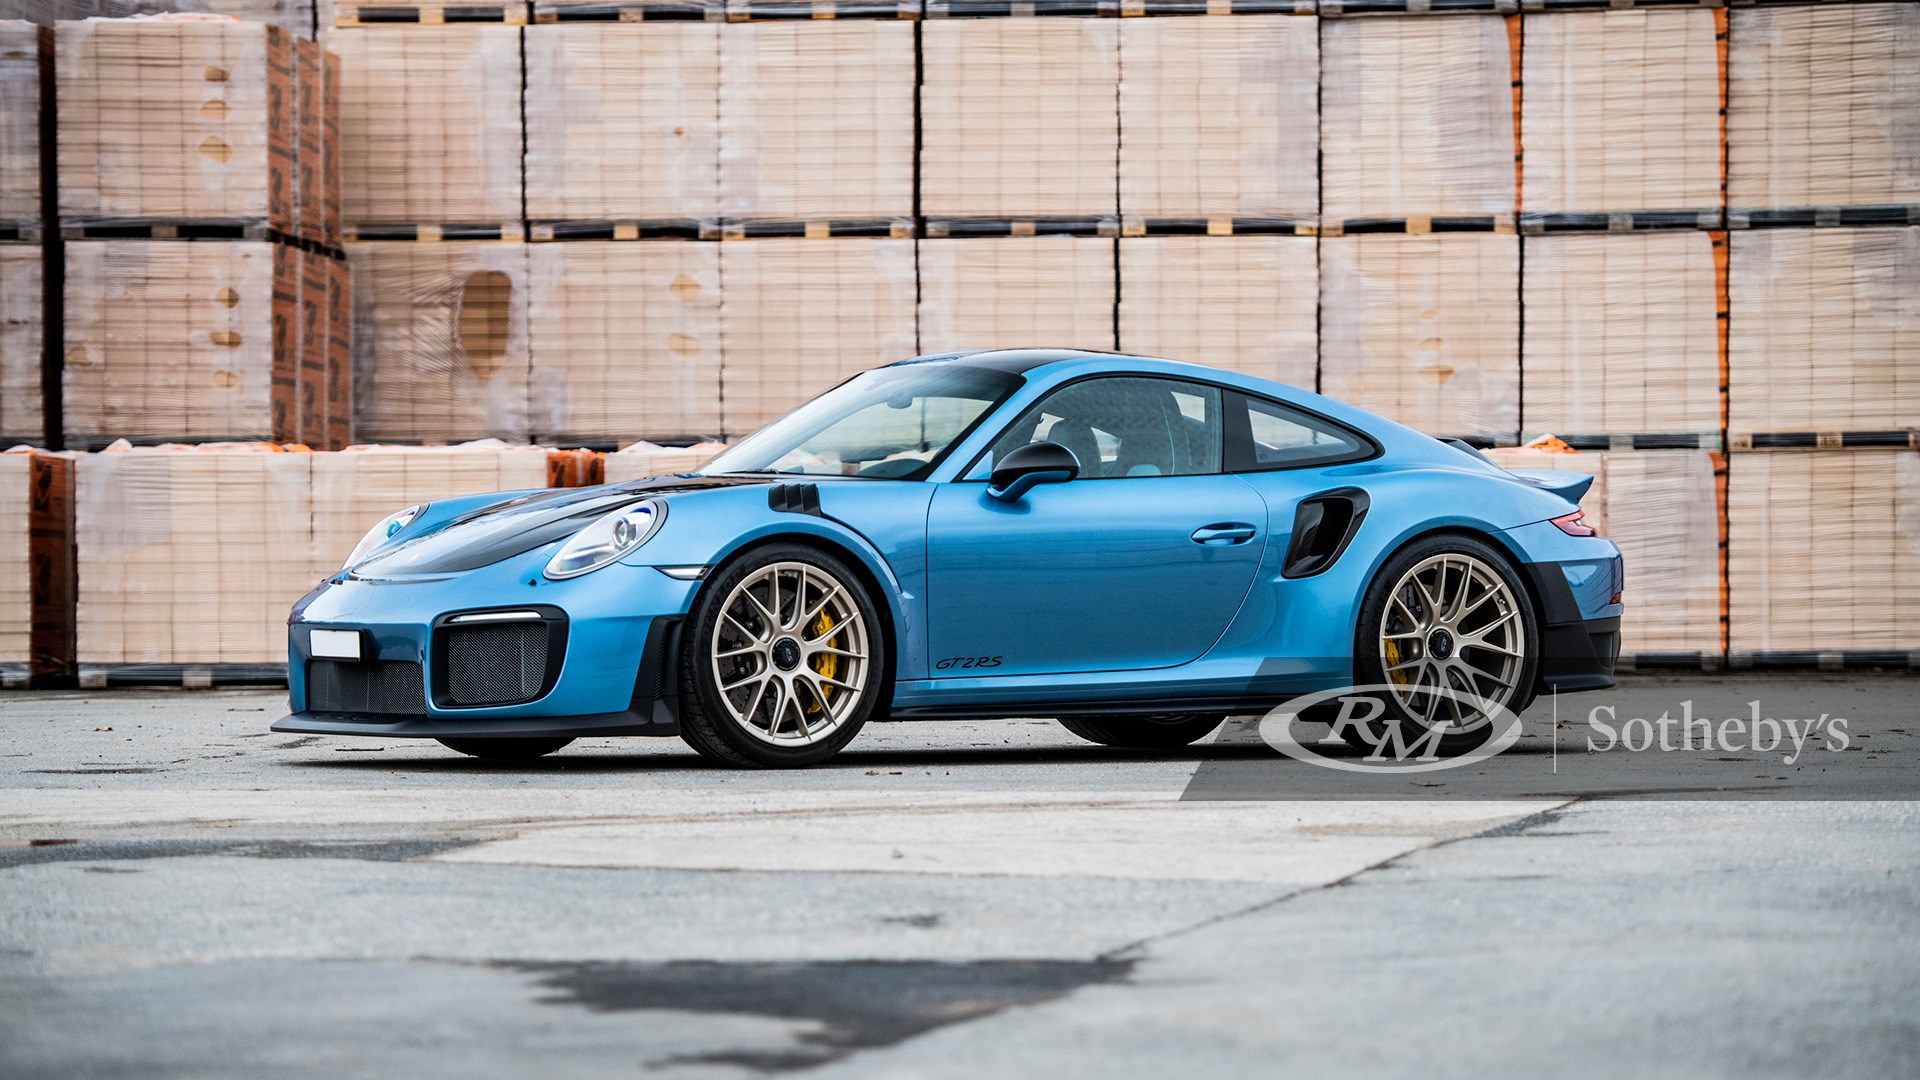 PTS Azzuro California Metallic 2018 Porsche 911 GT2 RS available at RM Sotheby's Online Only Open Roads February Auction 2021